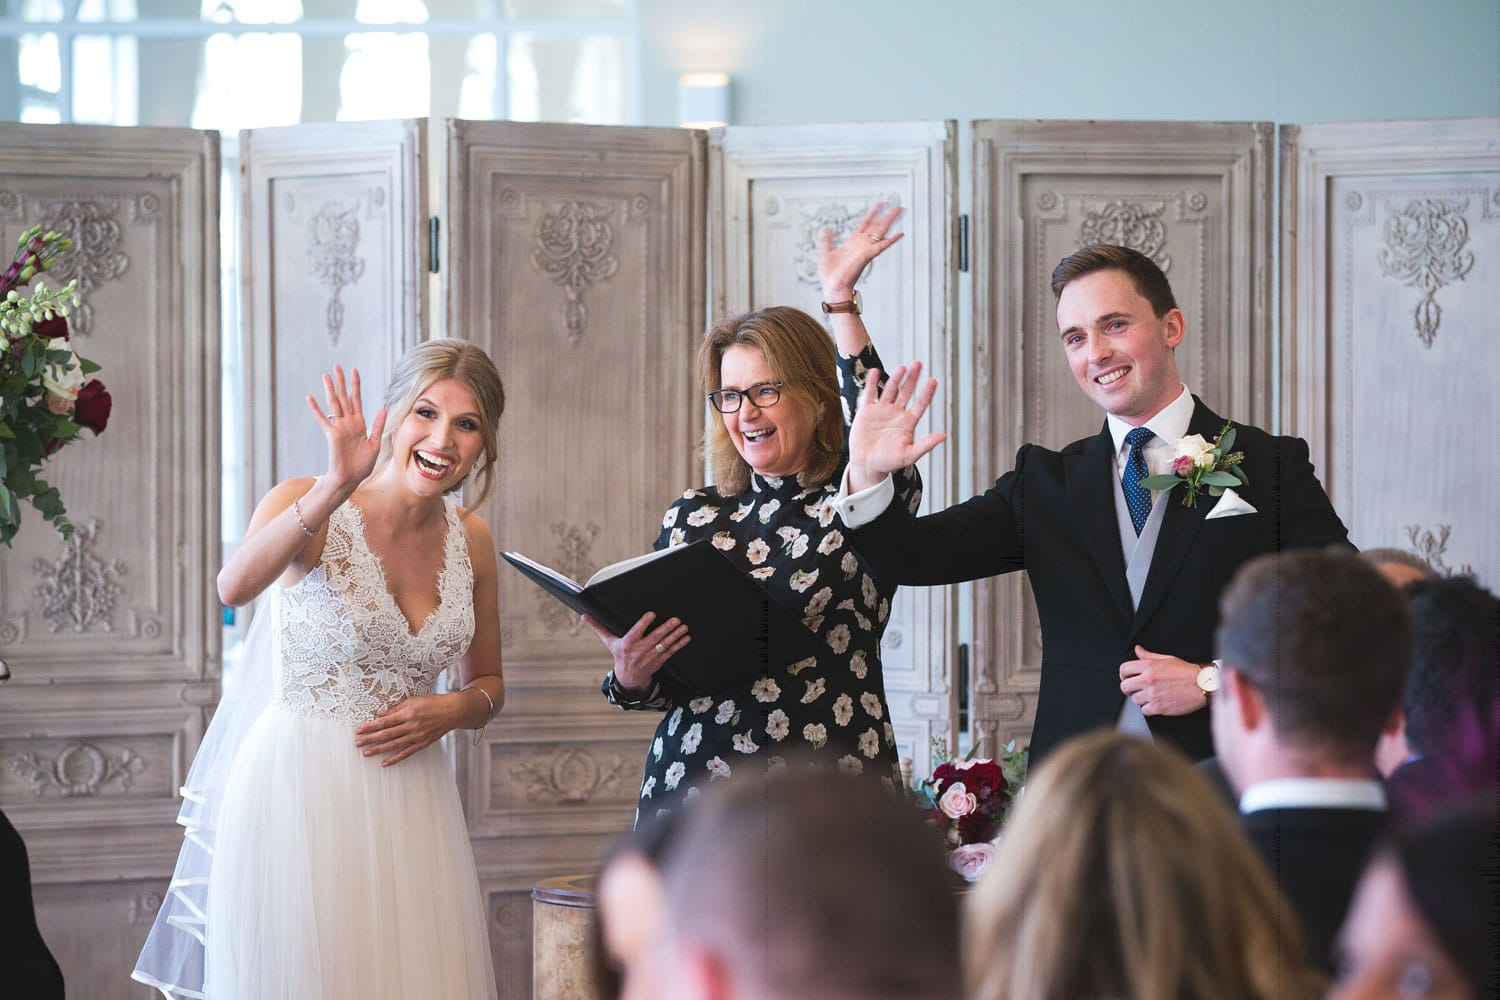 What makes a great wedding celebrant?